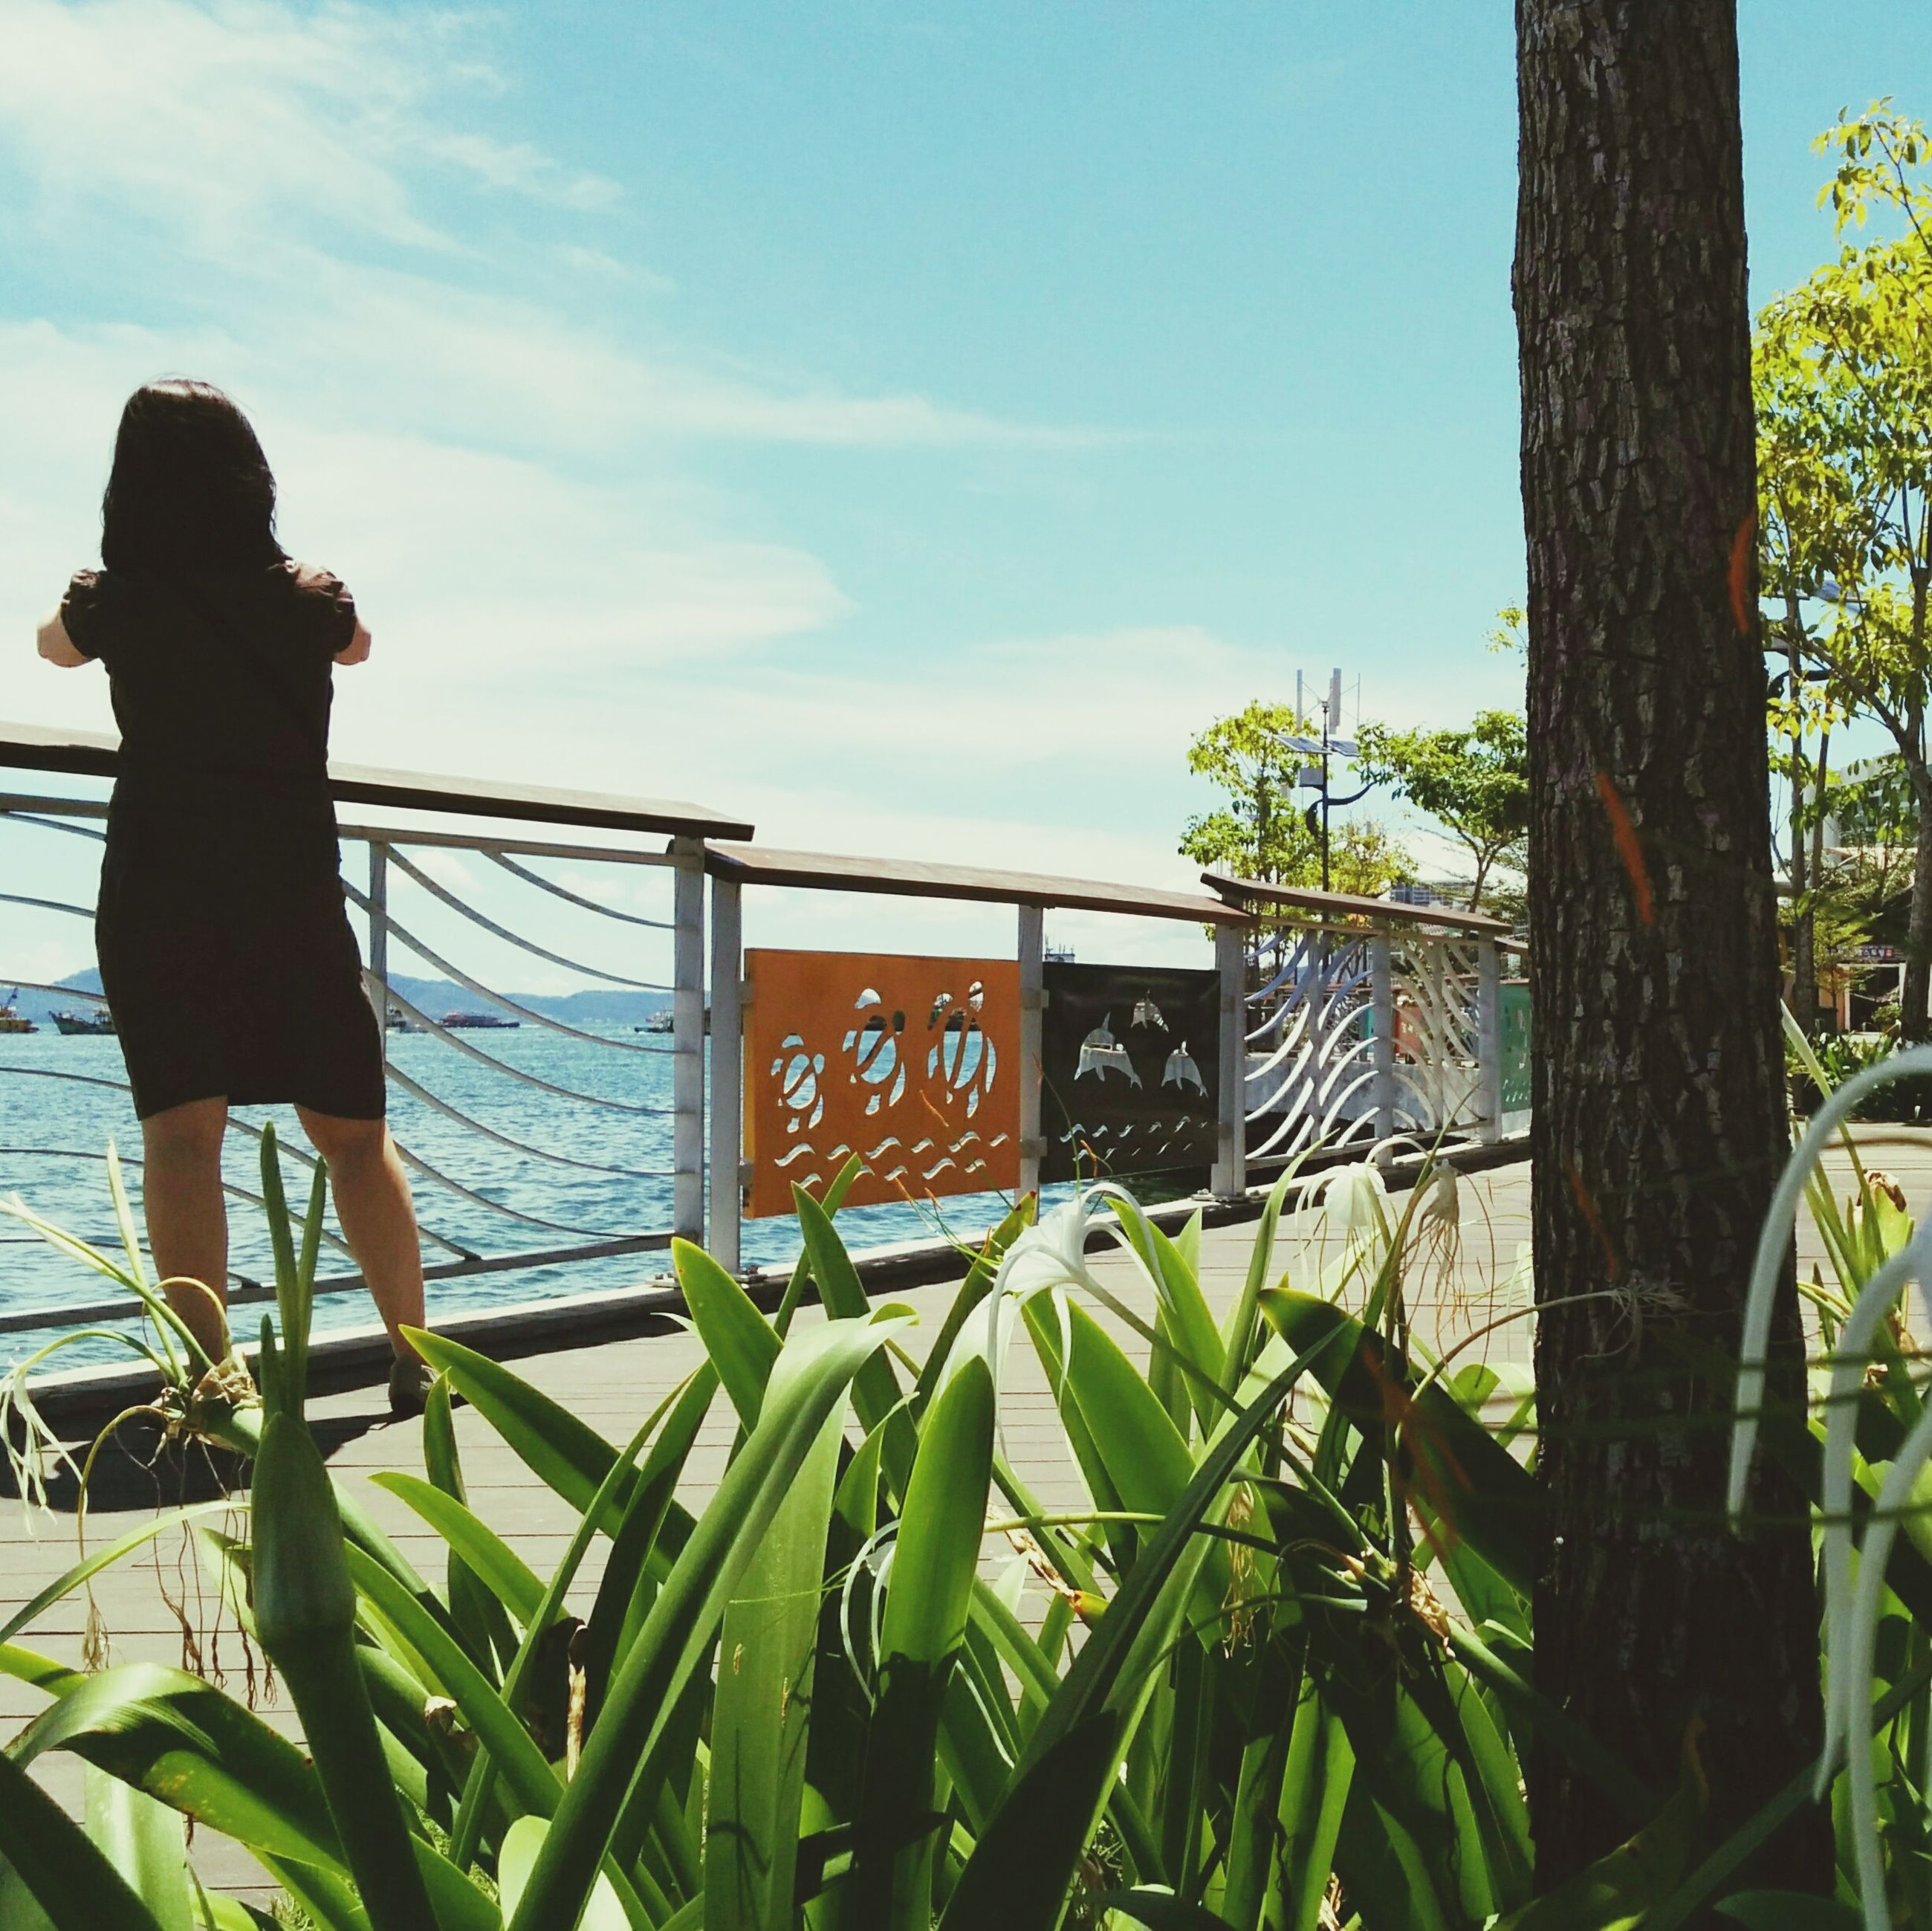 day, tree, one person, outdoors, built structure, sky, low angle view, architecture, nature, growth, women, real people, building exterior, people